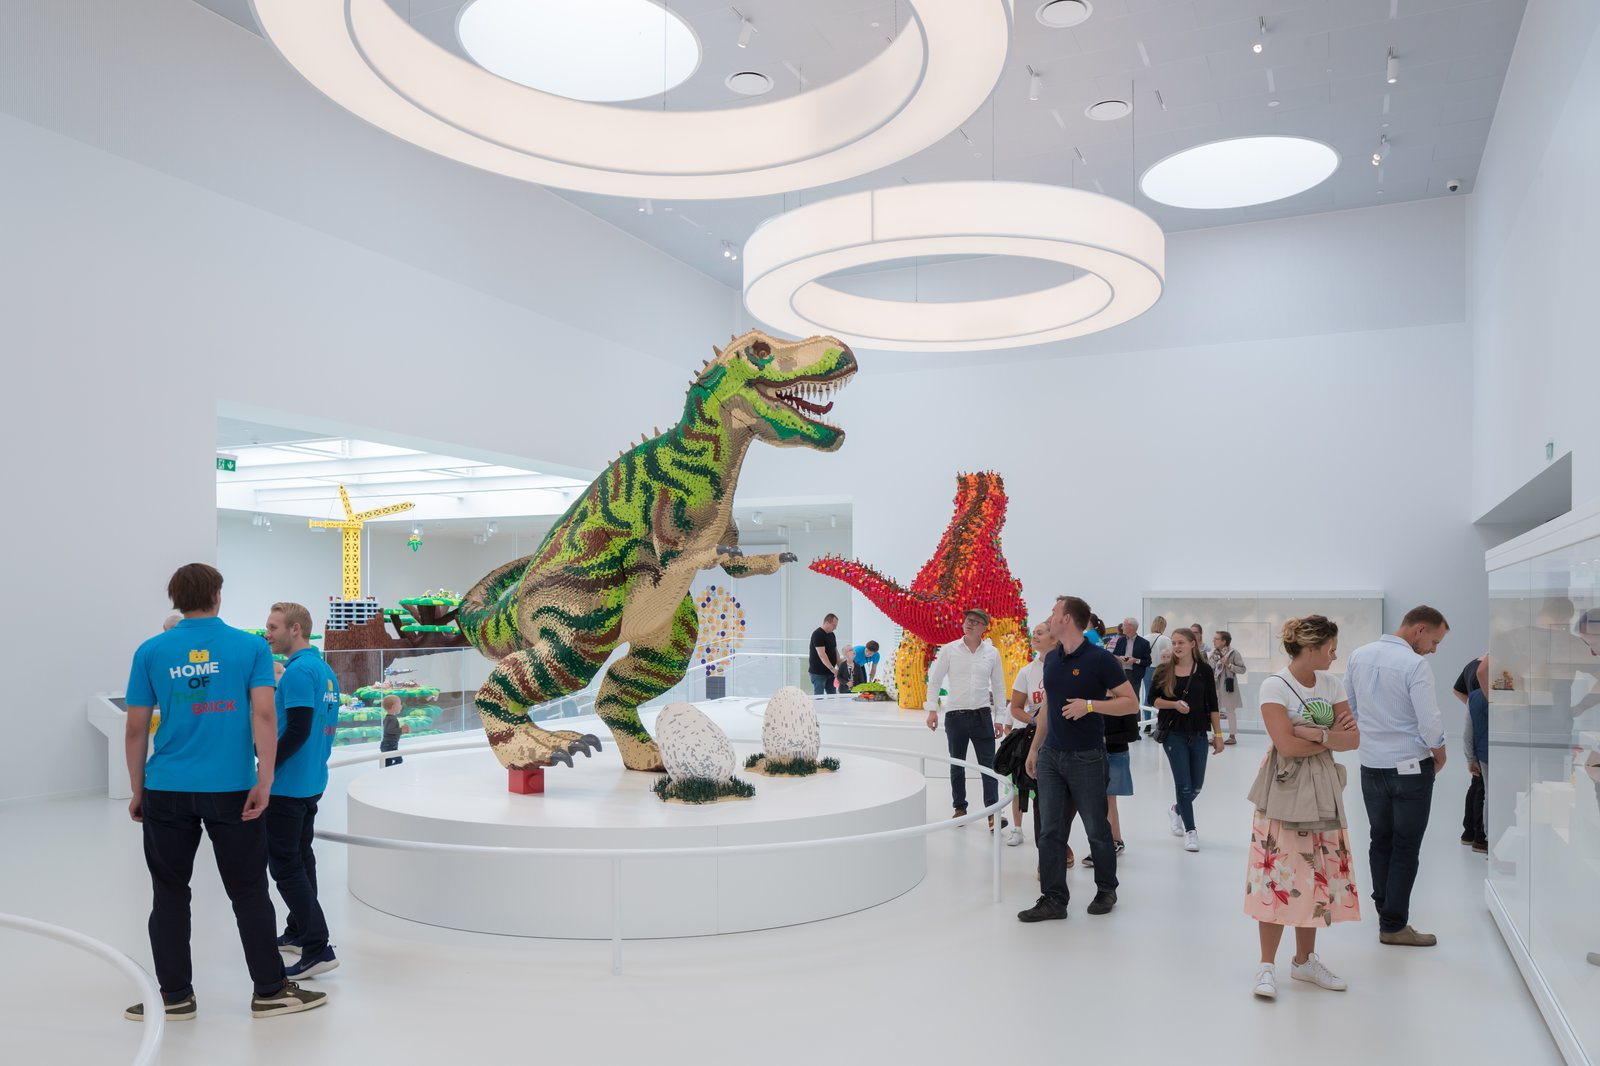 Photo 10 of 10 in Spend an Unforgettable Night in Denmark's New LEGO House